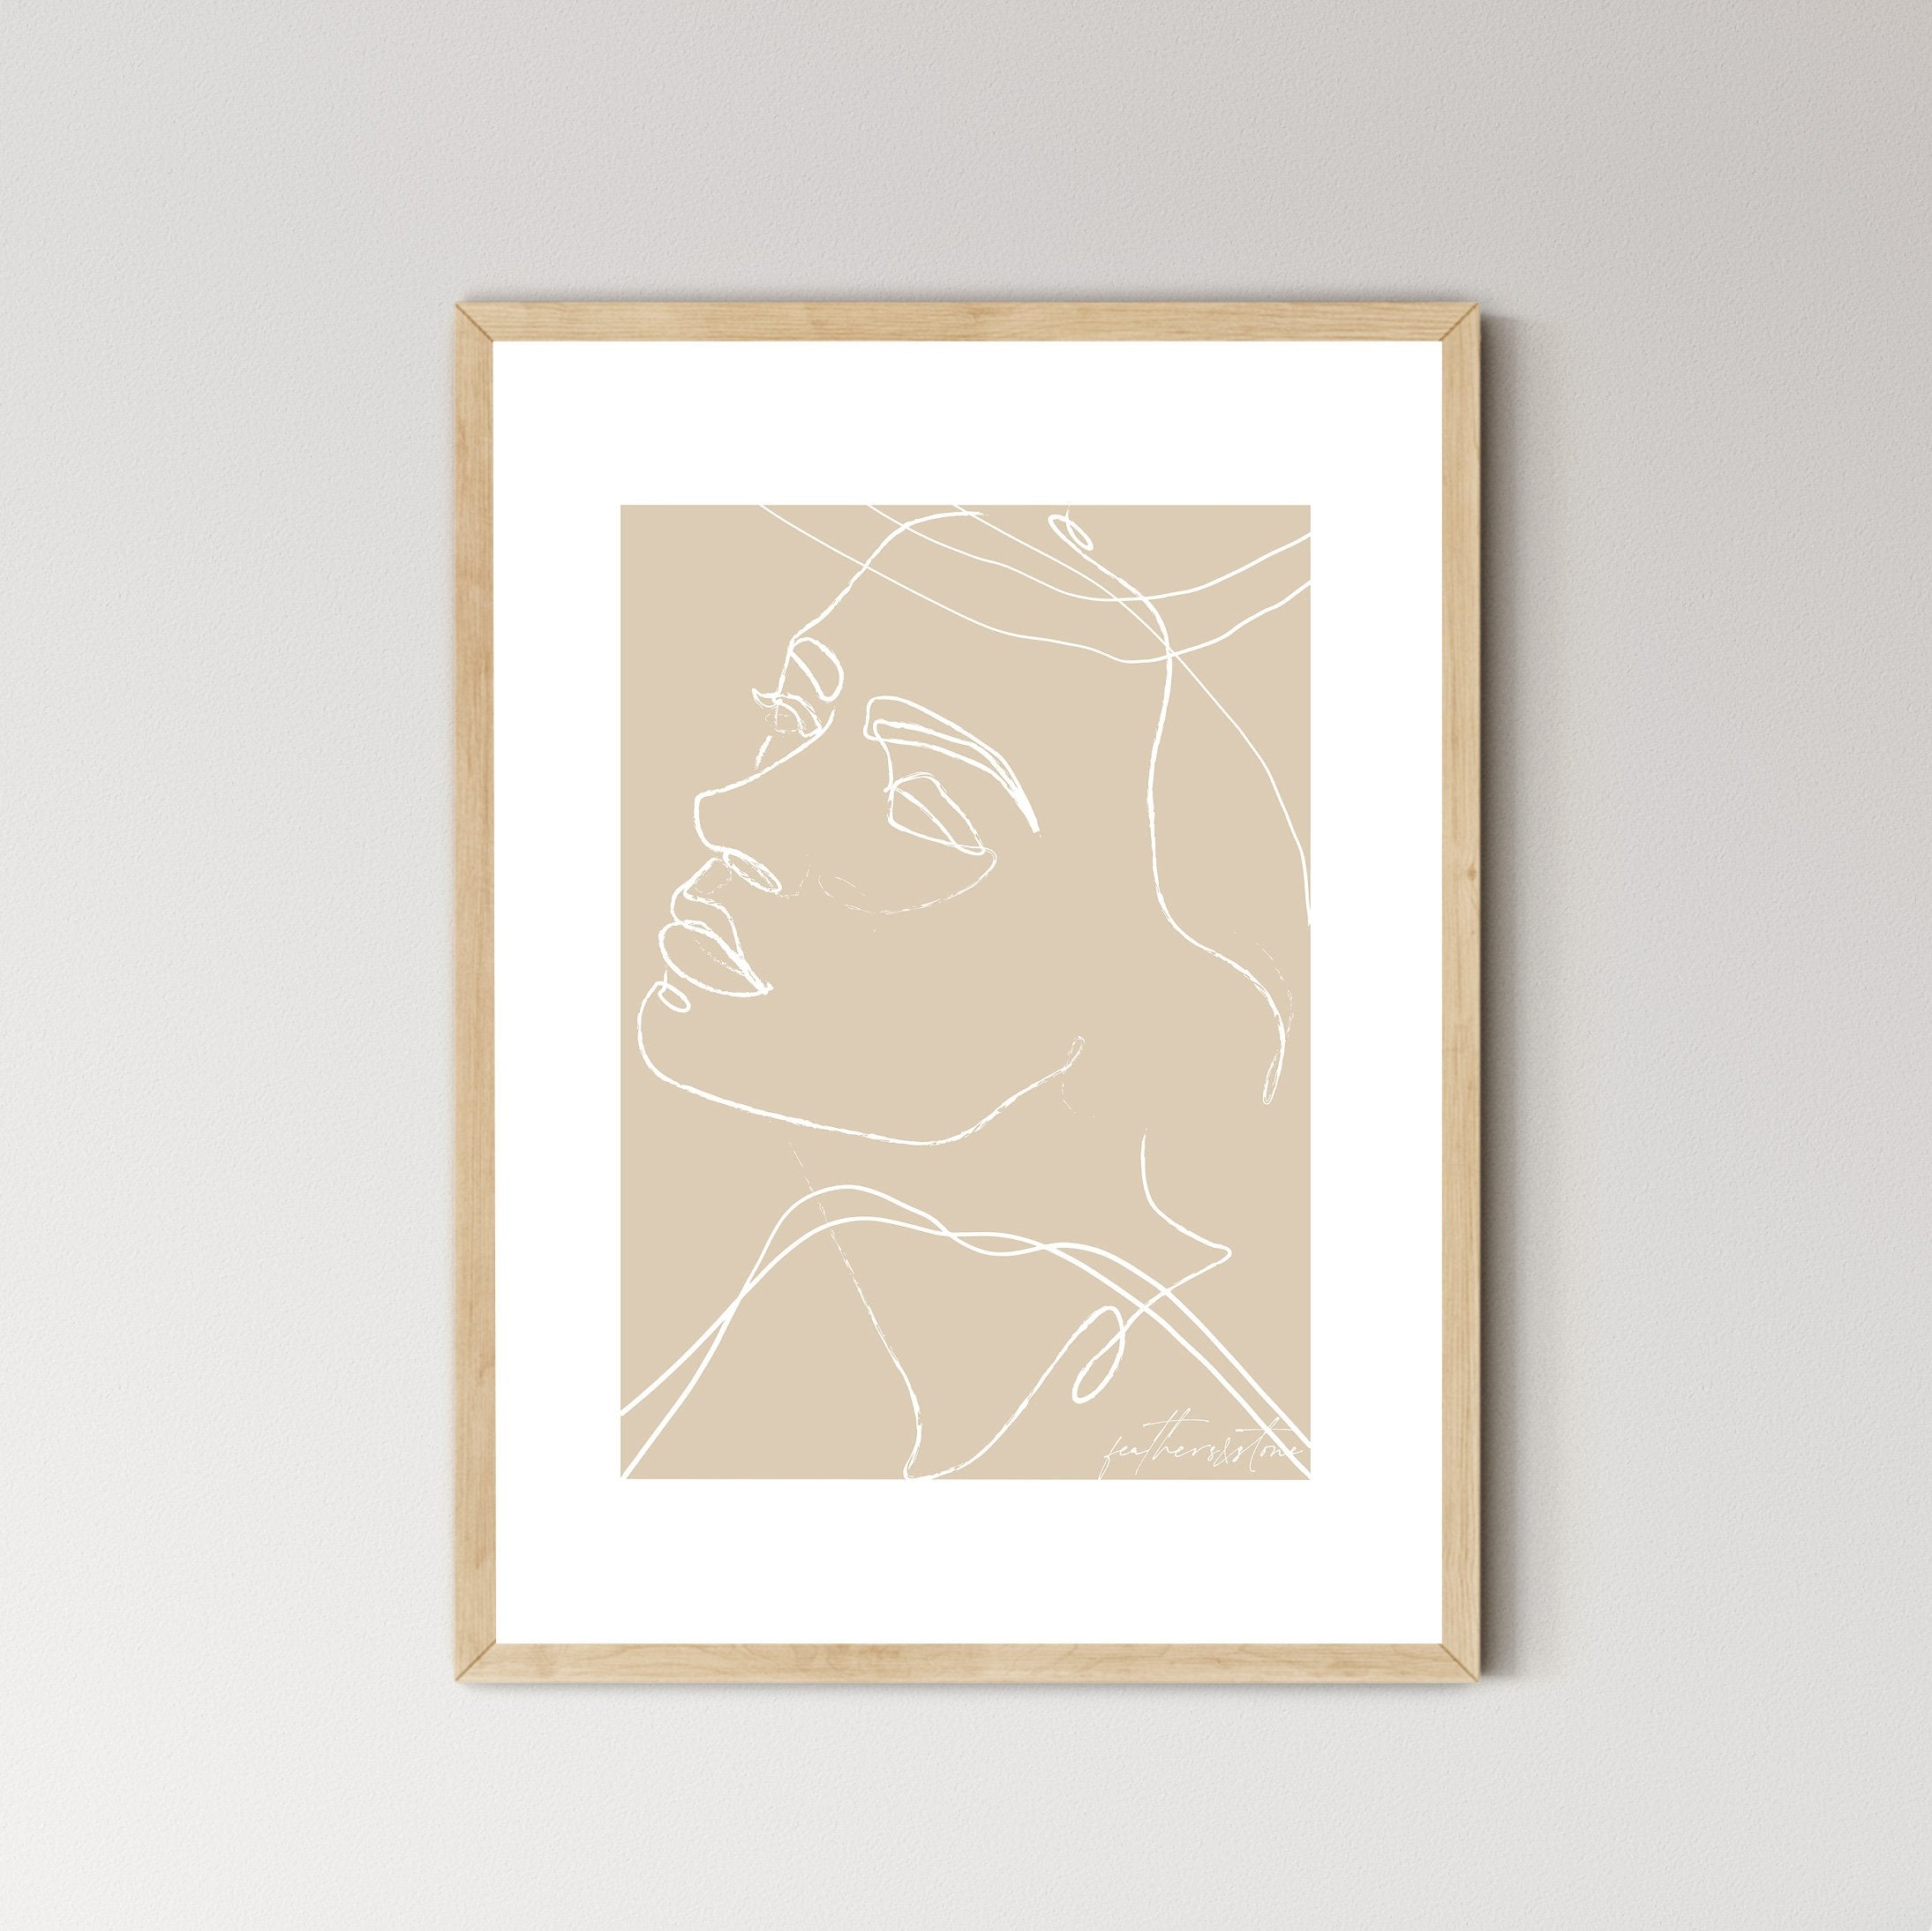 ROMI • Abstract Female Face Line Art Print - Feathers and Stone